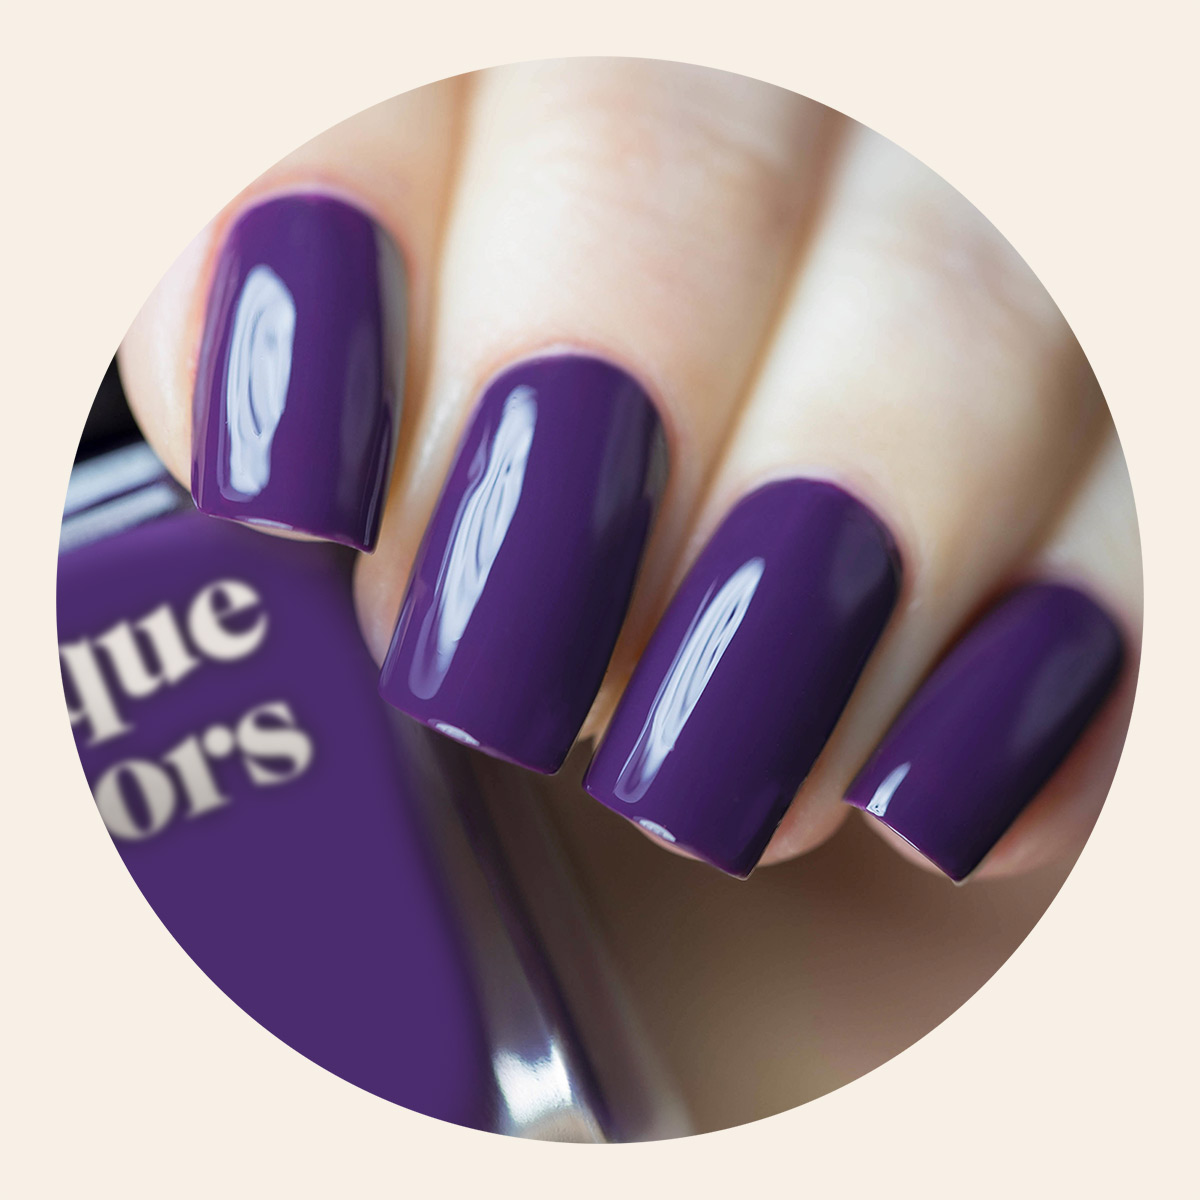 Dark Violet Purple Creme Nail Polish - Cirque Colors Velvet Underground